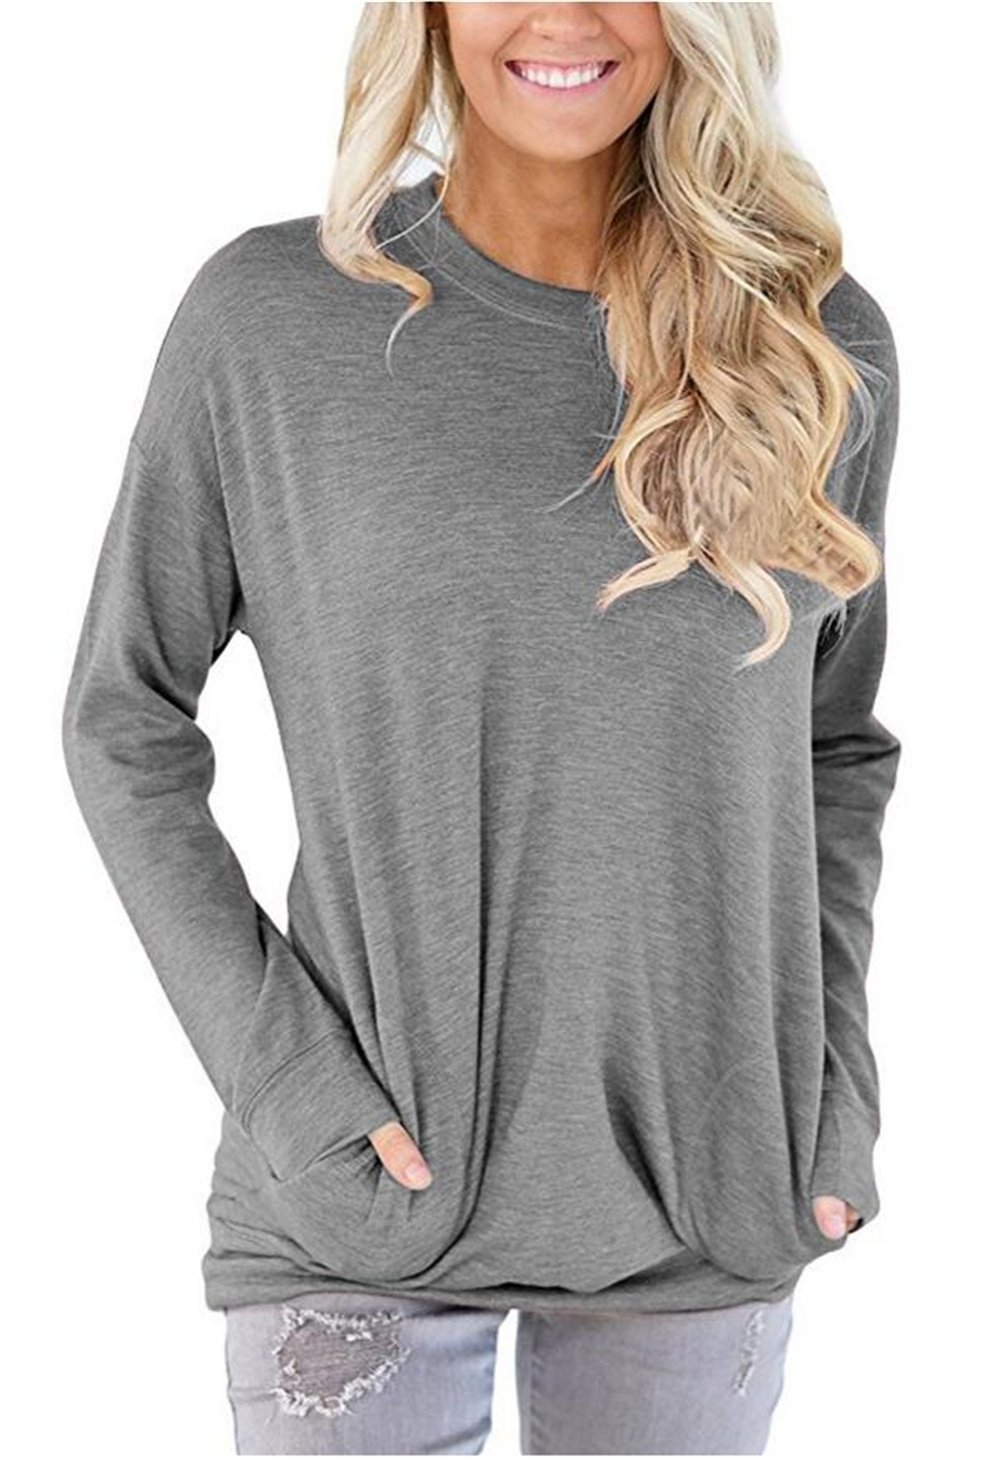 onlypuff Gray Long Sleeve Tshirts for Women Girls Loose Oversized Baggy Tunic Tops Preimun Soft & Stretchy X-Large